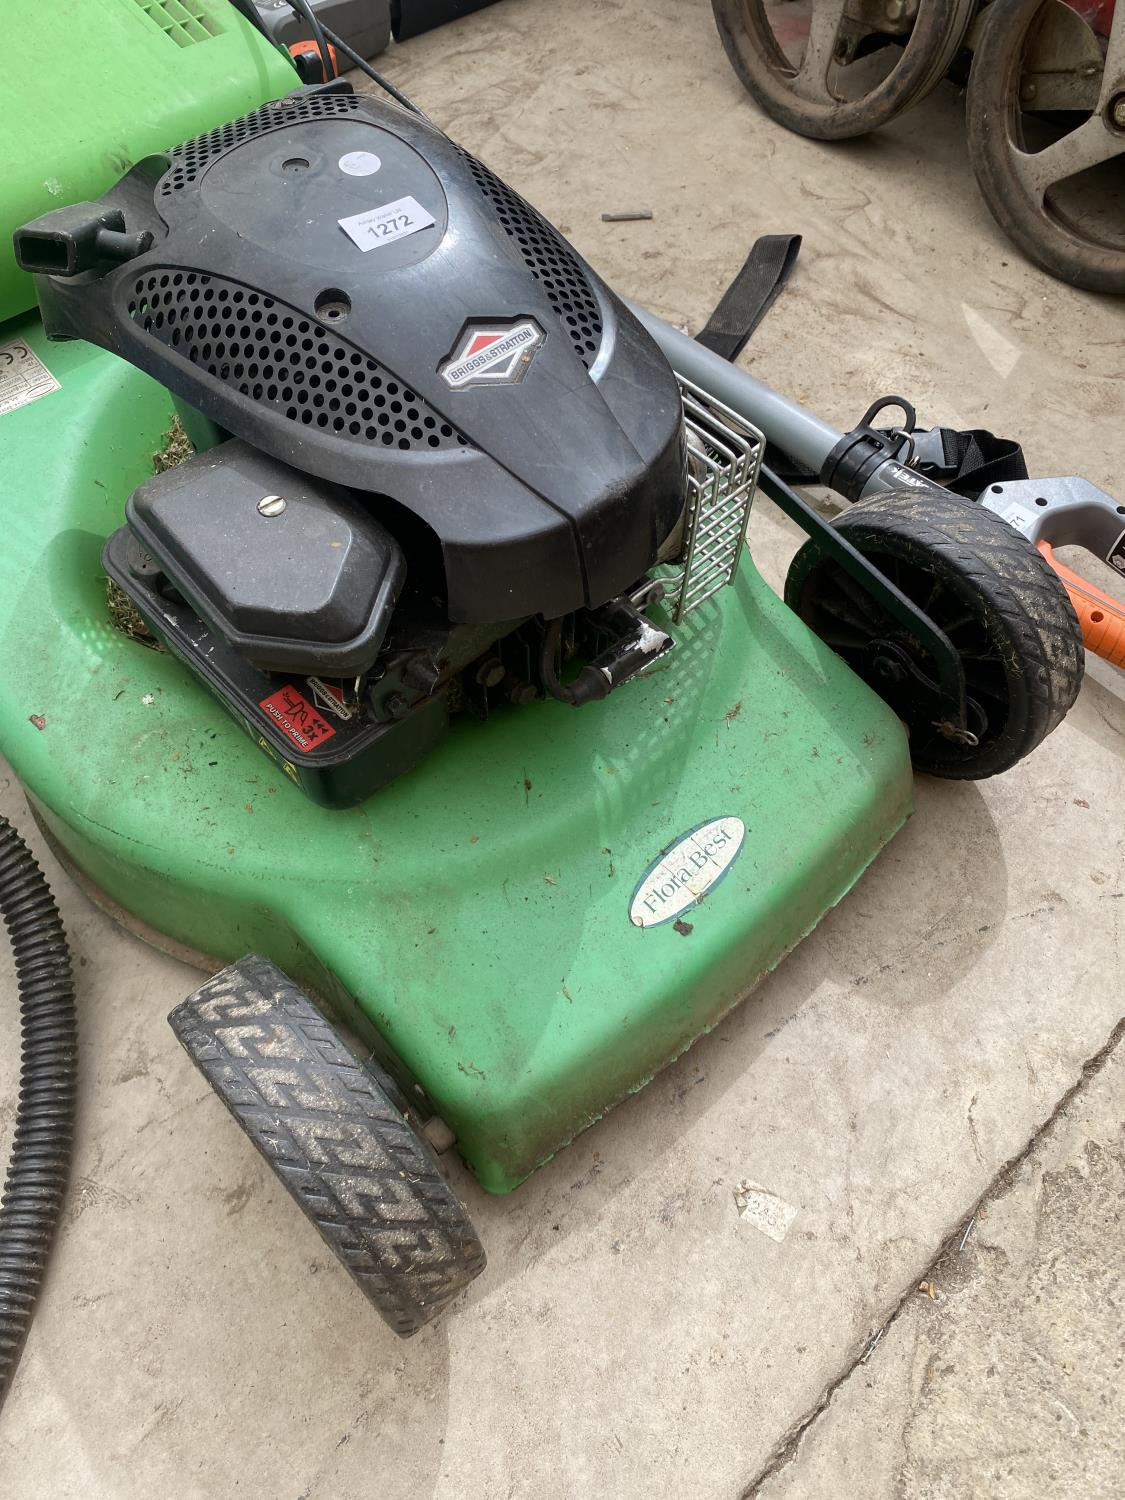 A FLORA BEST LAWN MOWER WITH GRASS BOX AND BRIGGS AND STRATTON PETROL ENGINE - Image 2 of 5